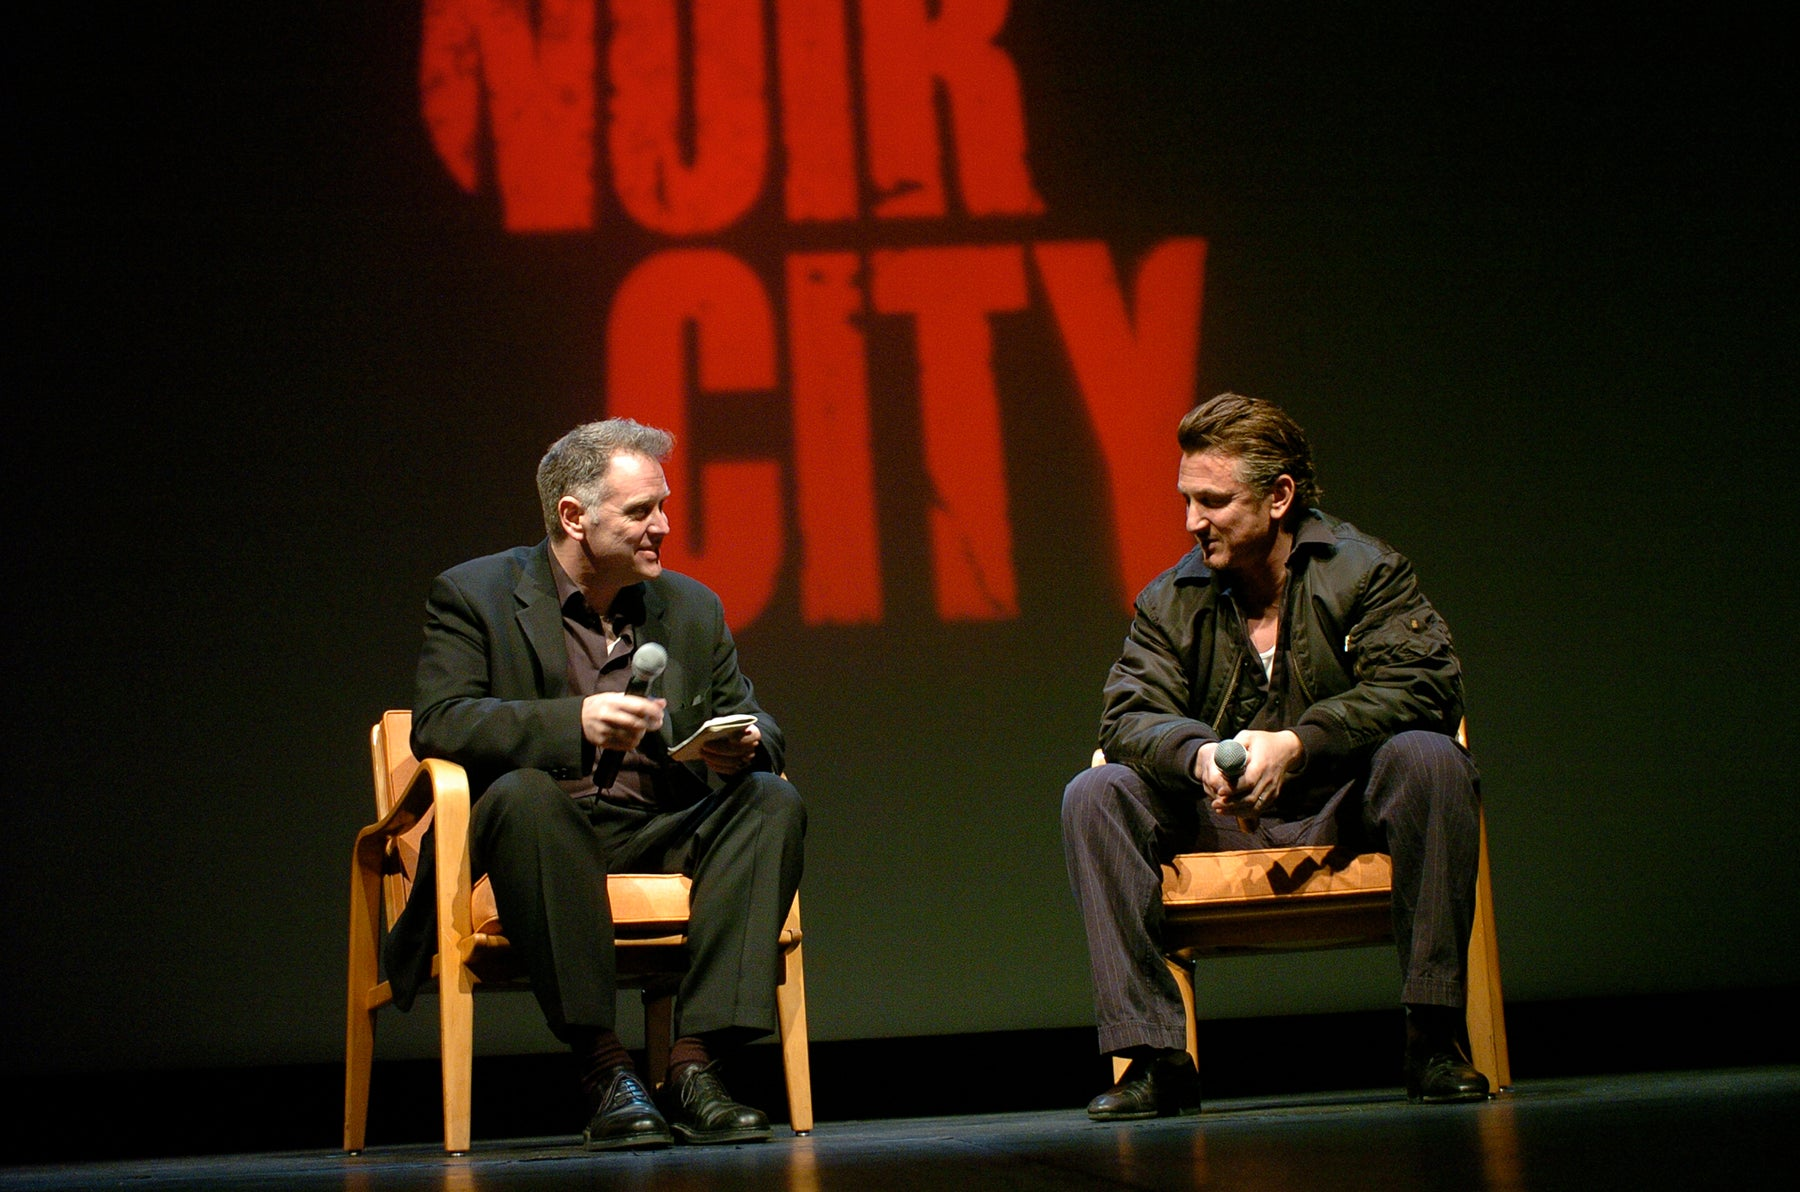 Eddie Muller with Sean Penn at Noir City